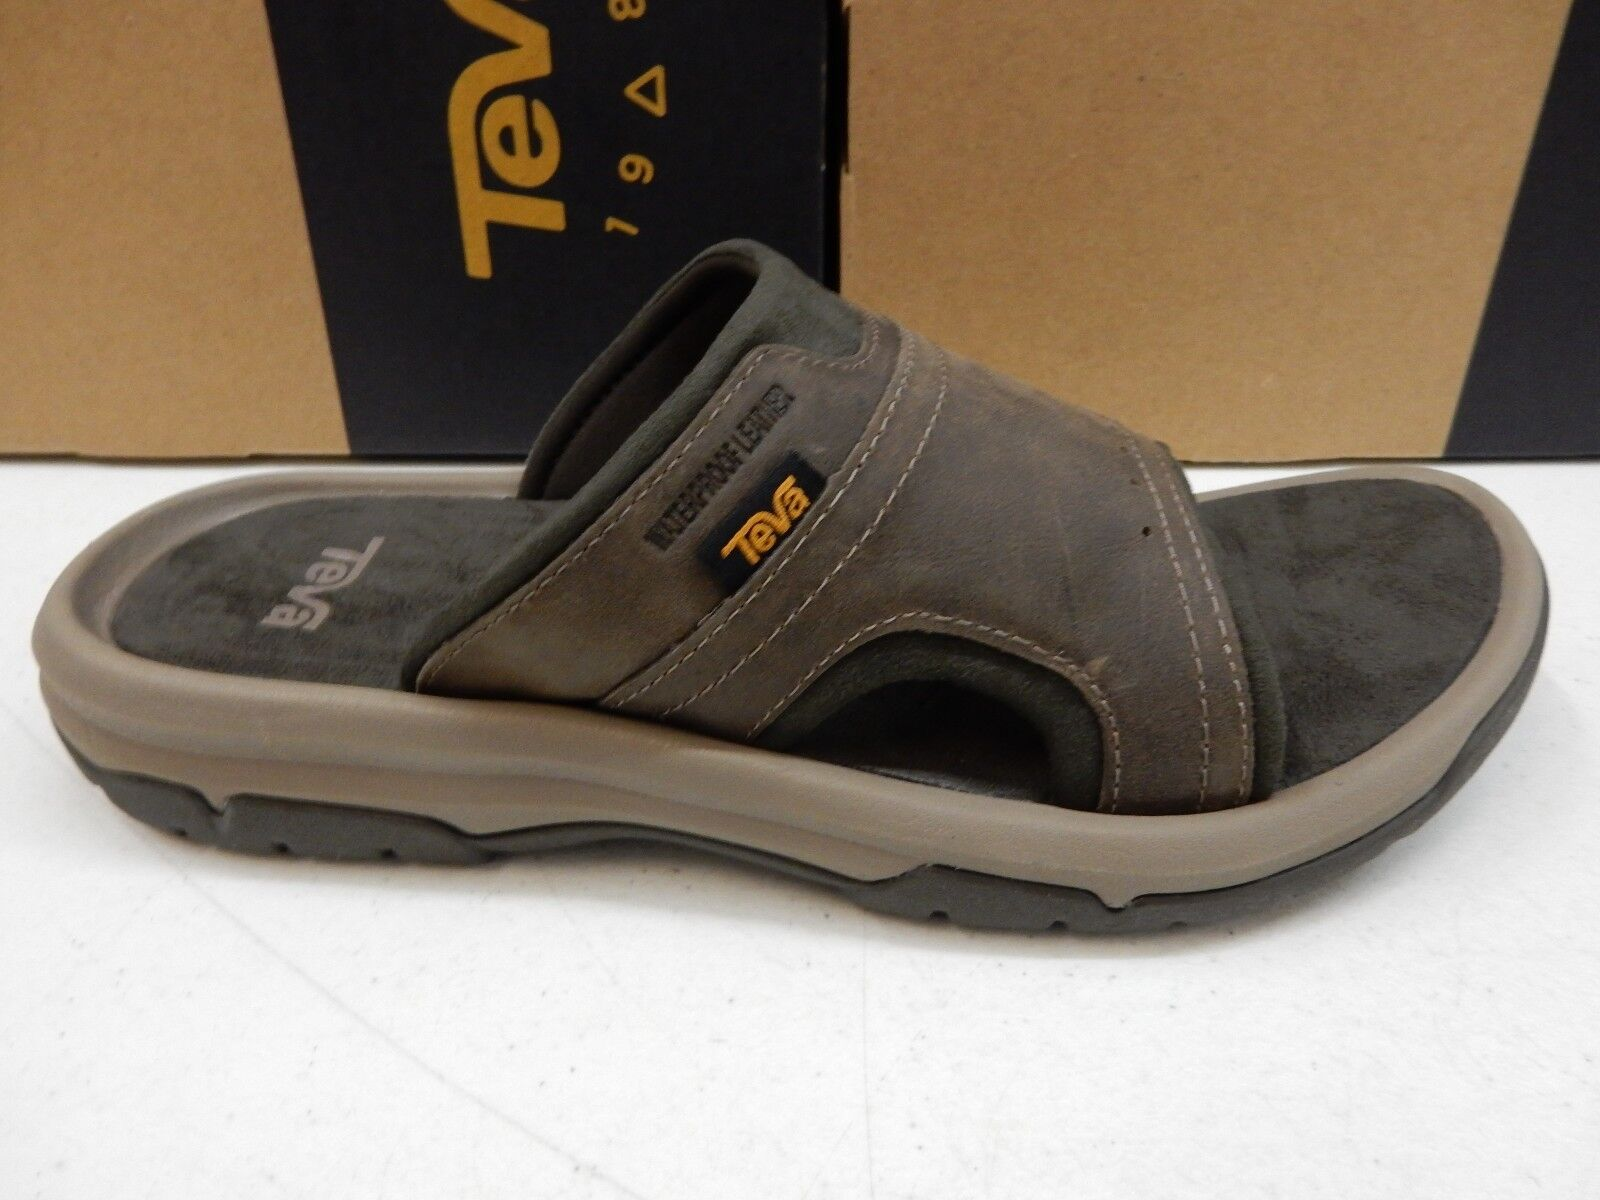 TEVA MENS SANDALS LANGDON SLIDE WALNUT SIZE 14